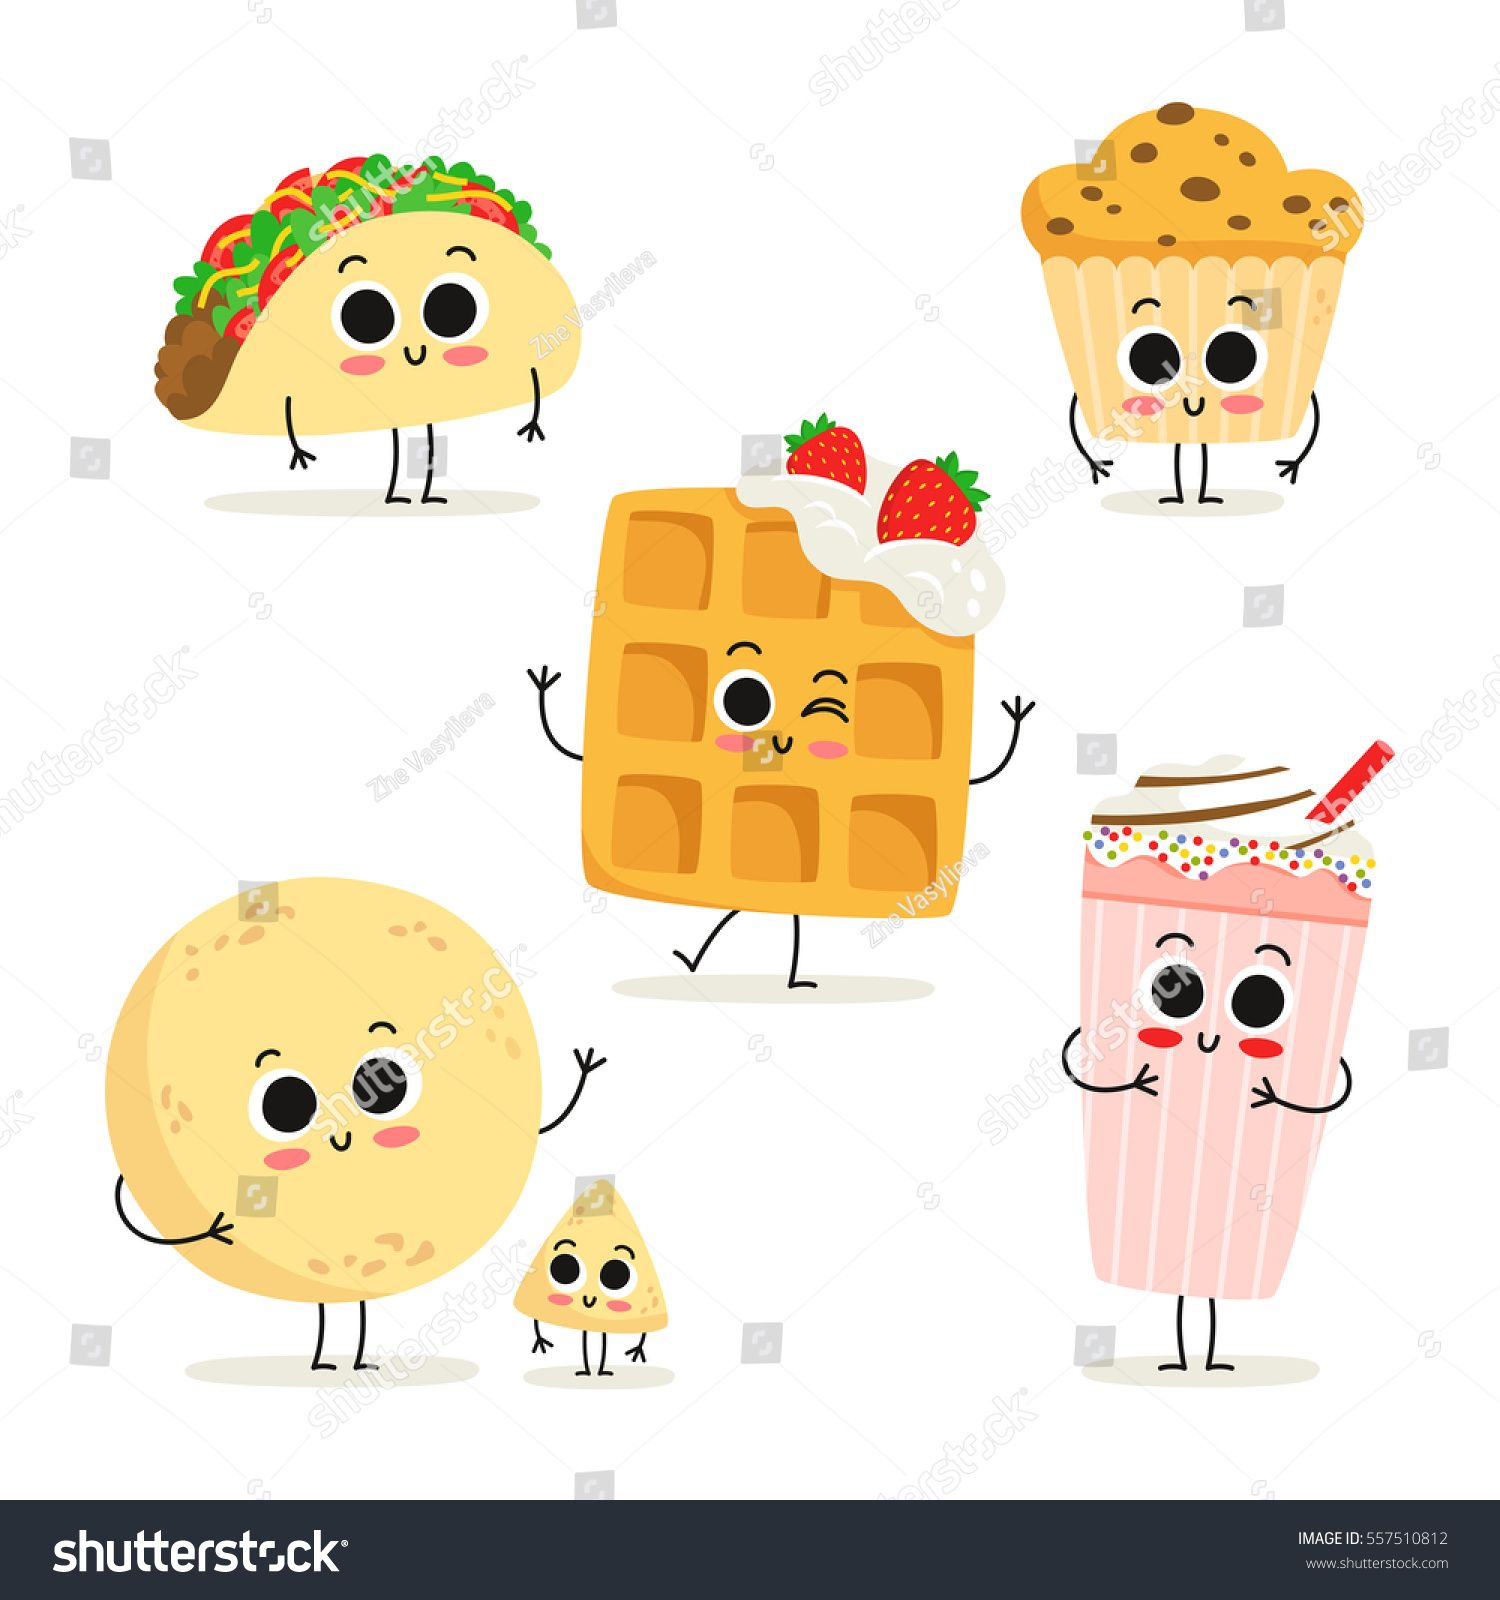 Cute Set Of Six Cartoon Fast Food Snack Characters Isolated On White Taco Muffin Waffle Milkshake Tortilla Cute Cartoon Food Cartoon Cake Cartoon Cupcakes